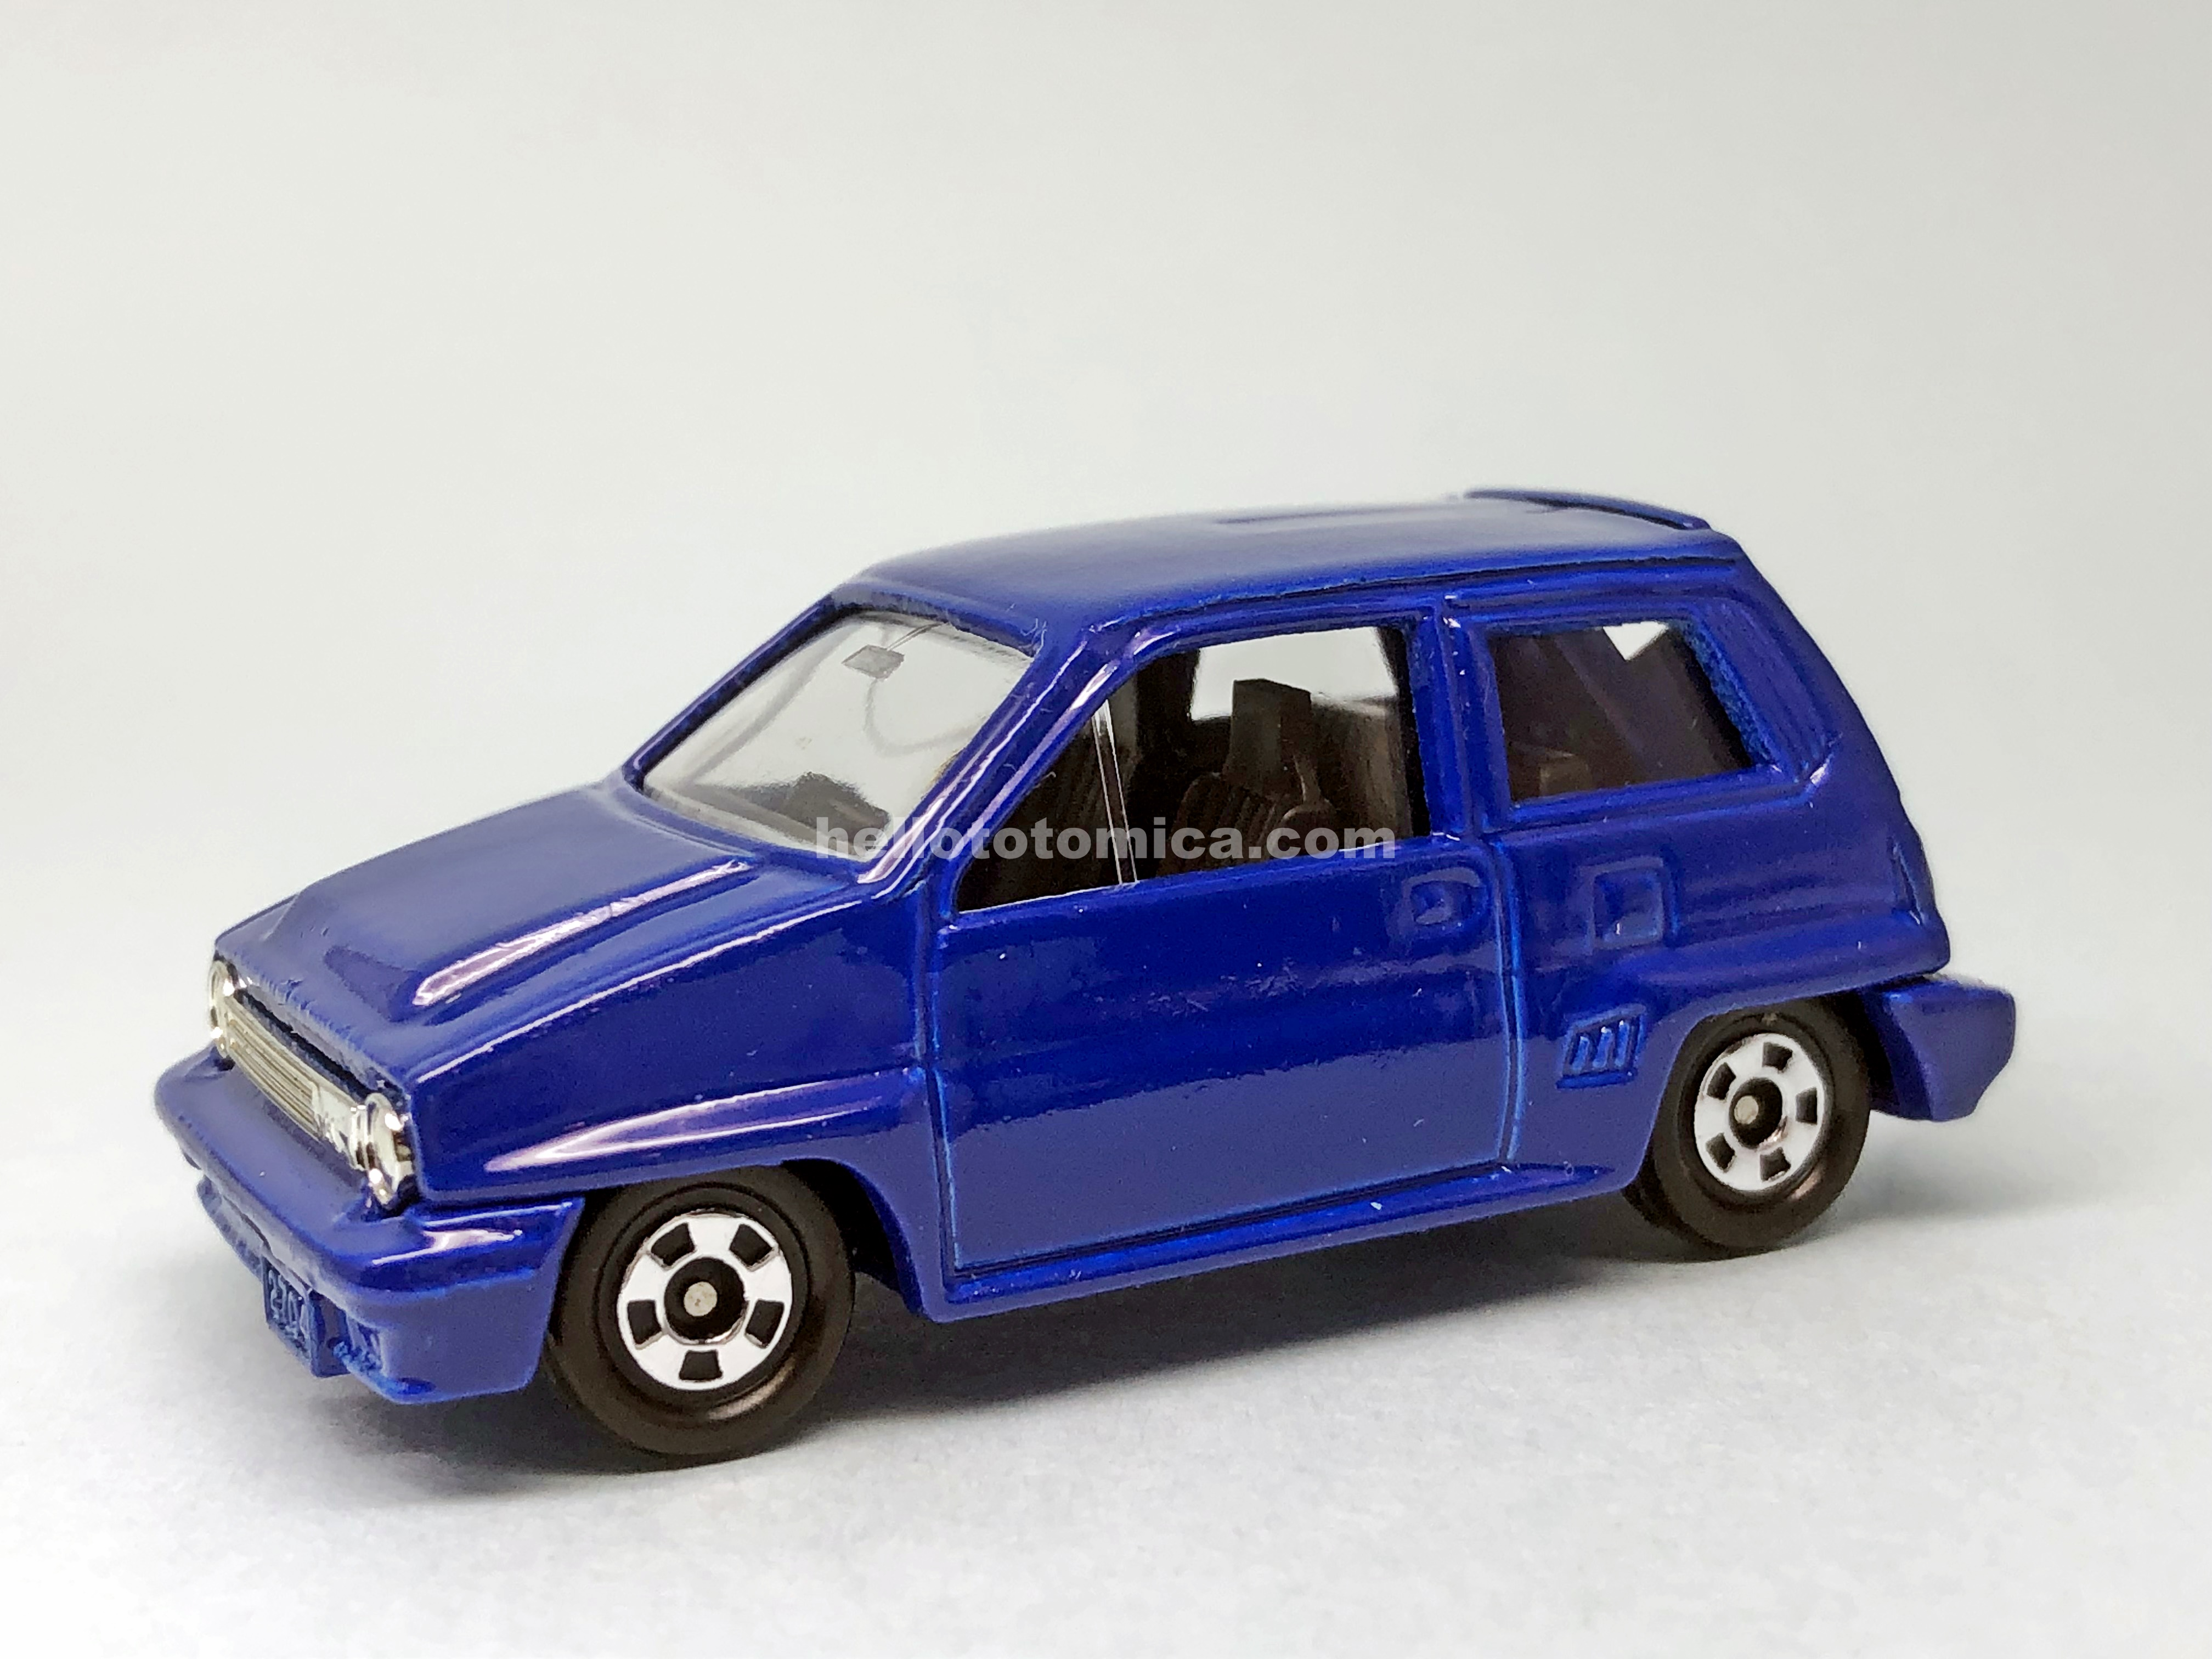 54-5 HONDA CITY TURBO